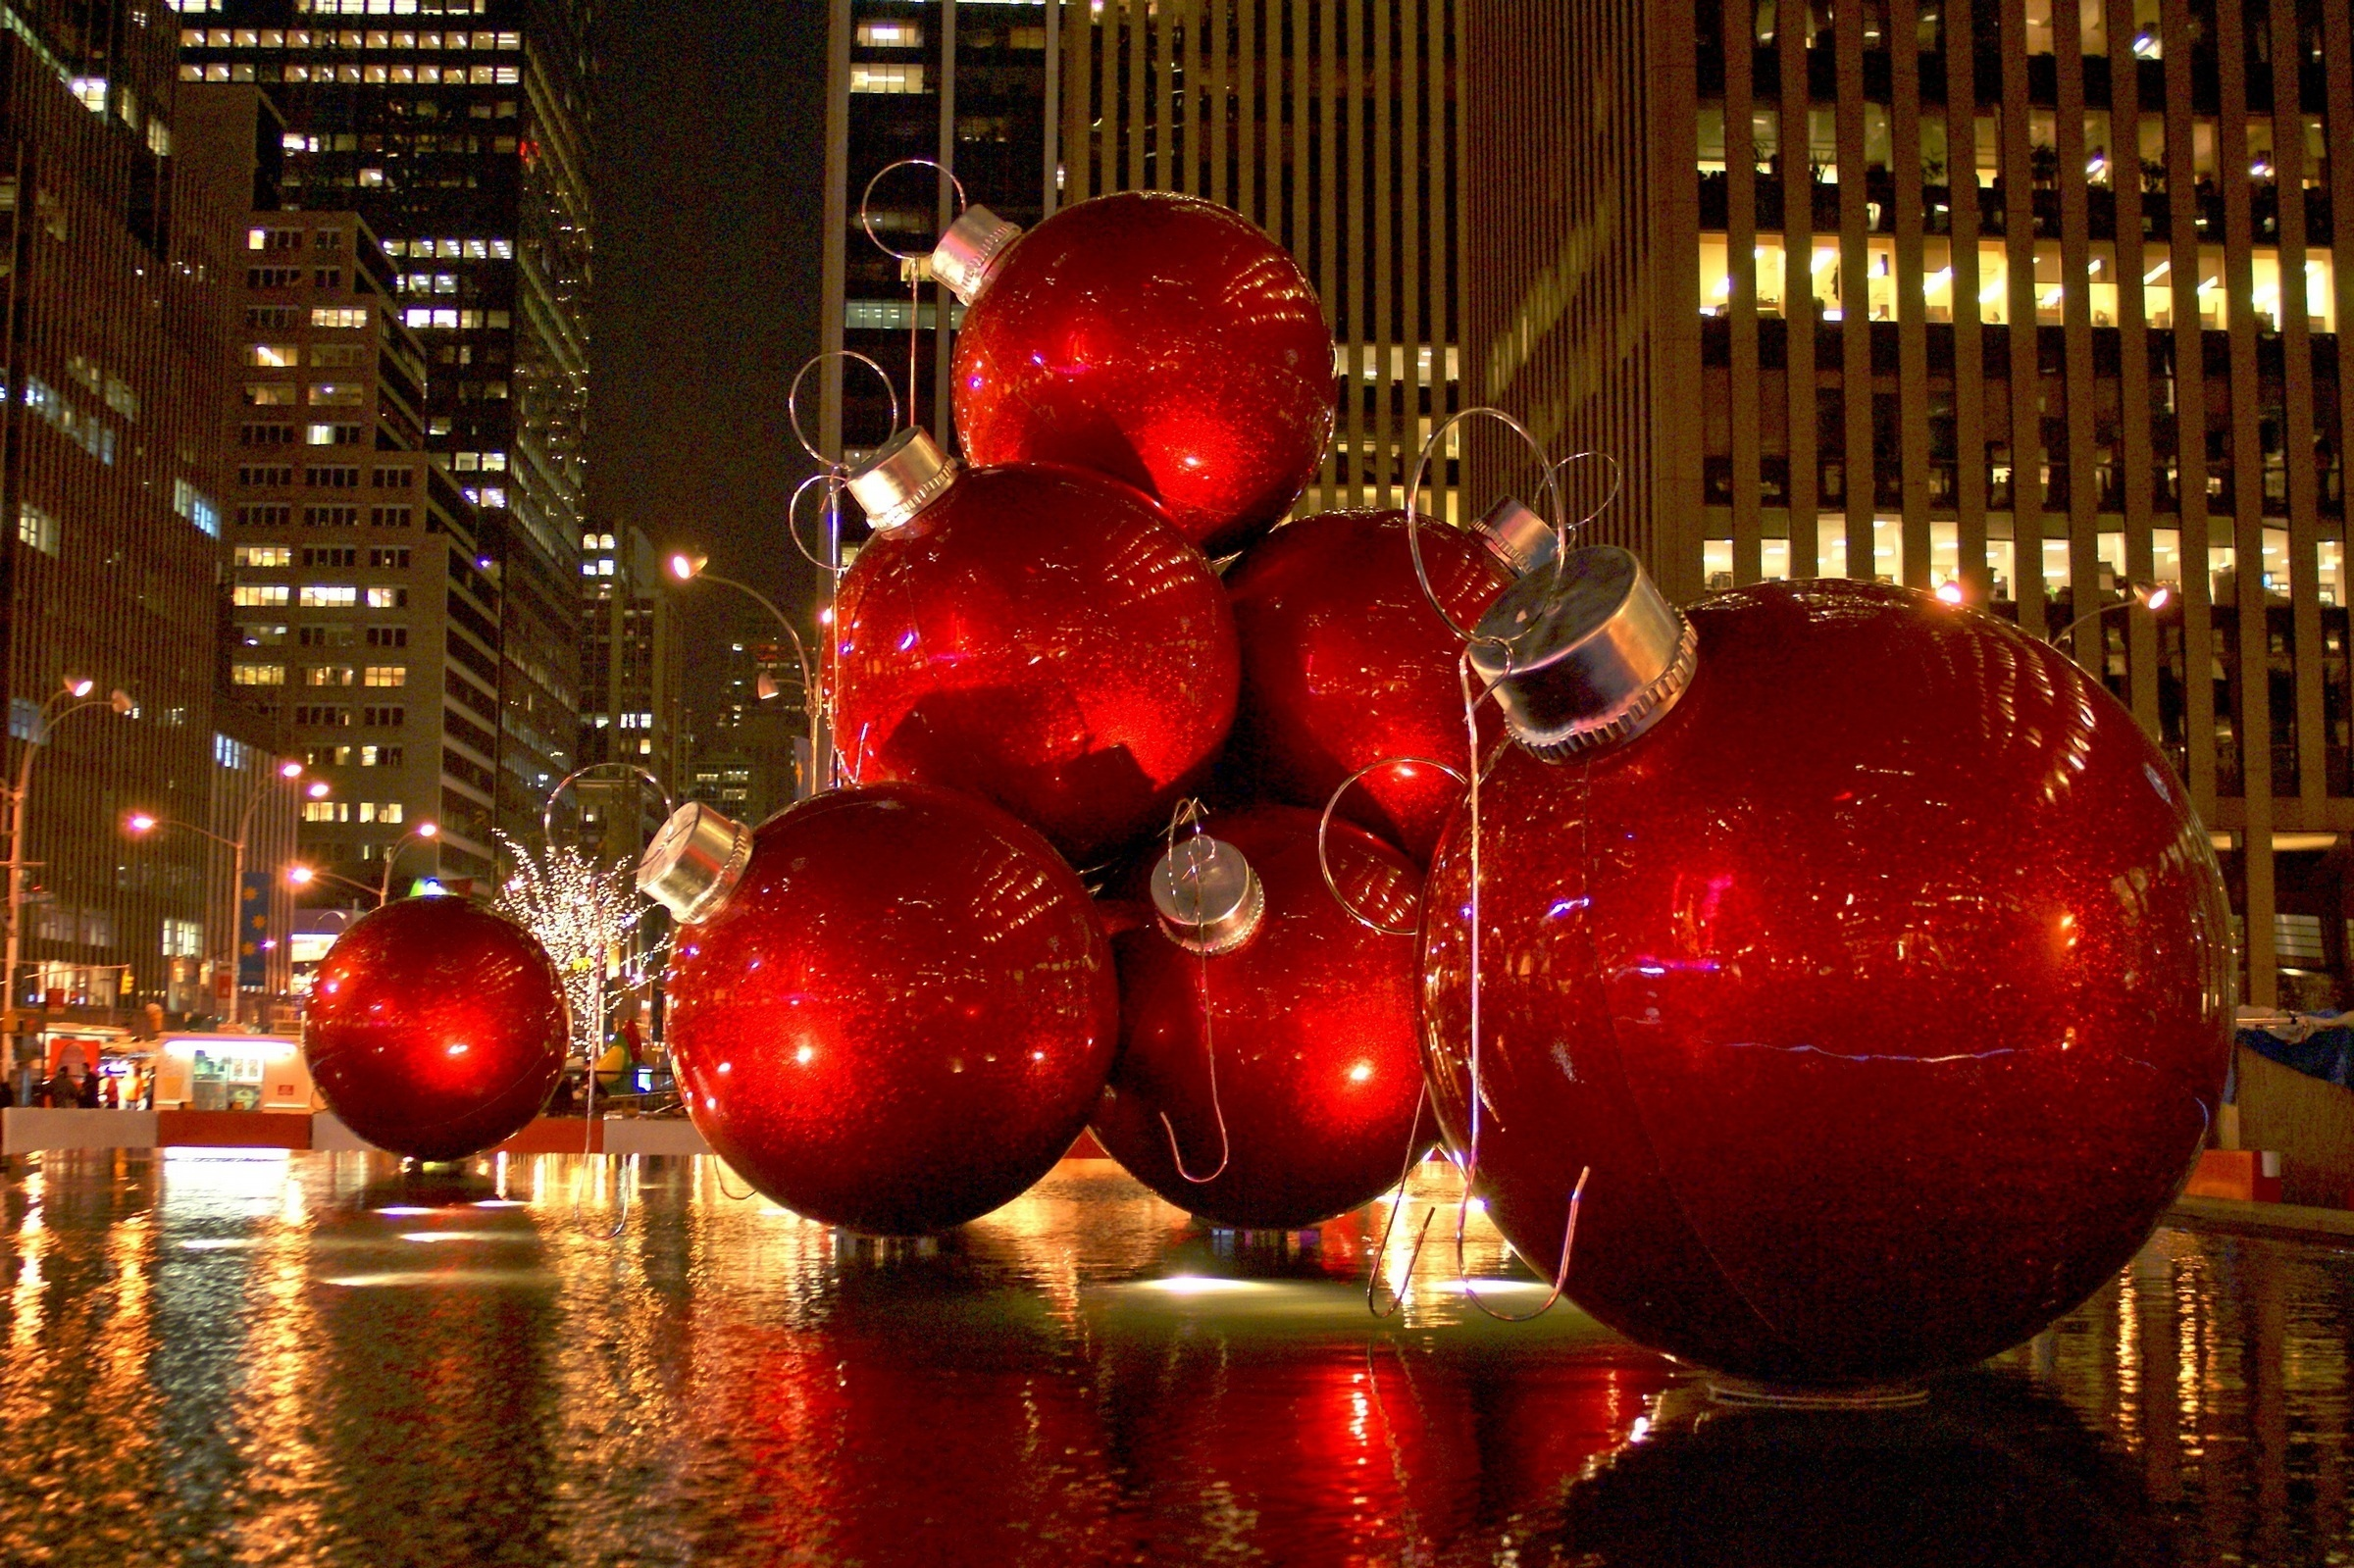 #C21309 Toda A Beleza Do Natal Em New York 5549 decorations noel new york 2400x1599 px @ aertt.com